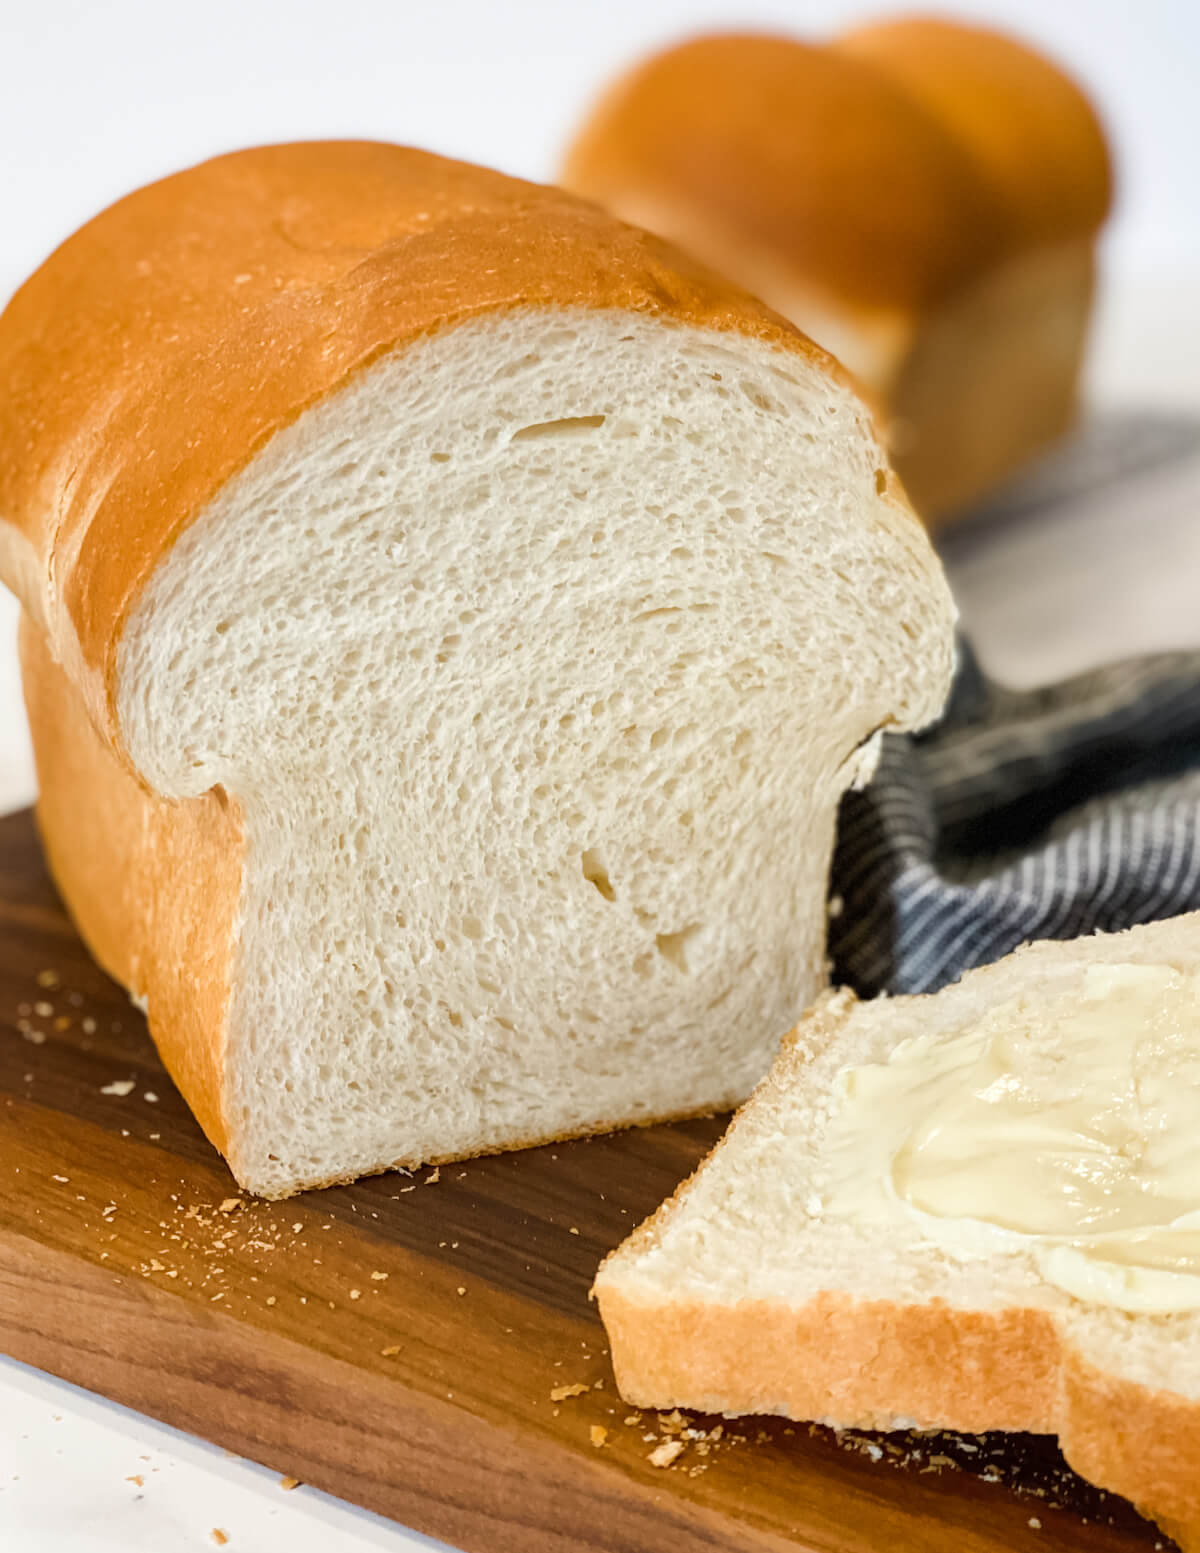 Sliced Japanese milk bread with butter